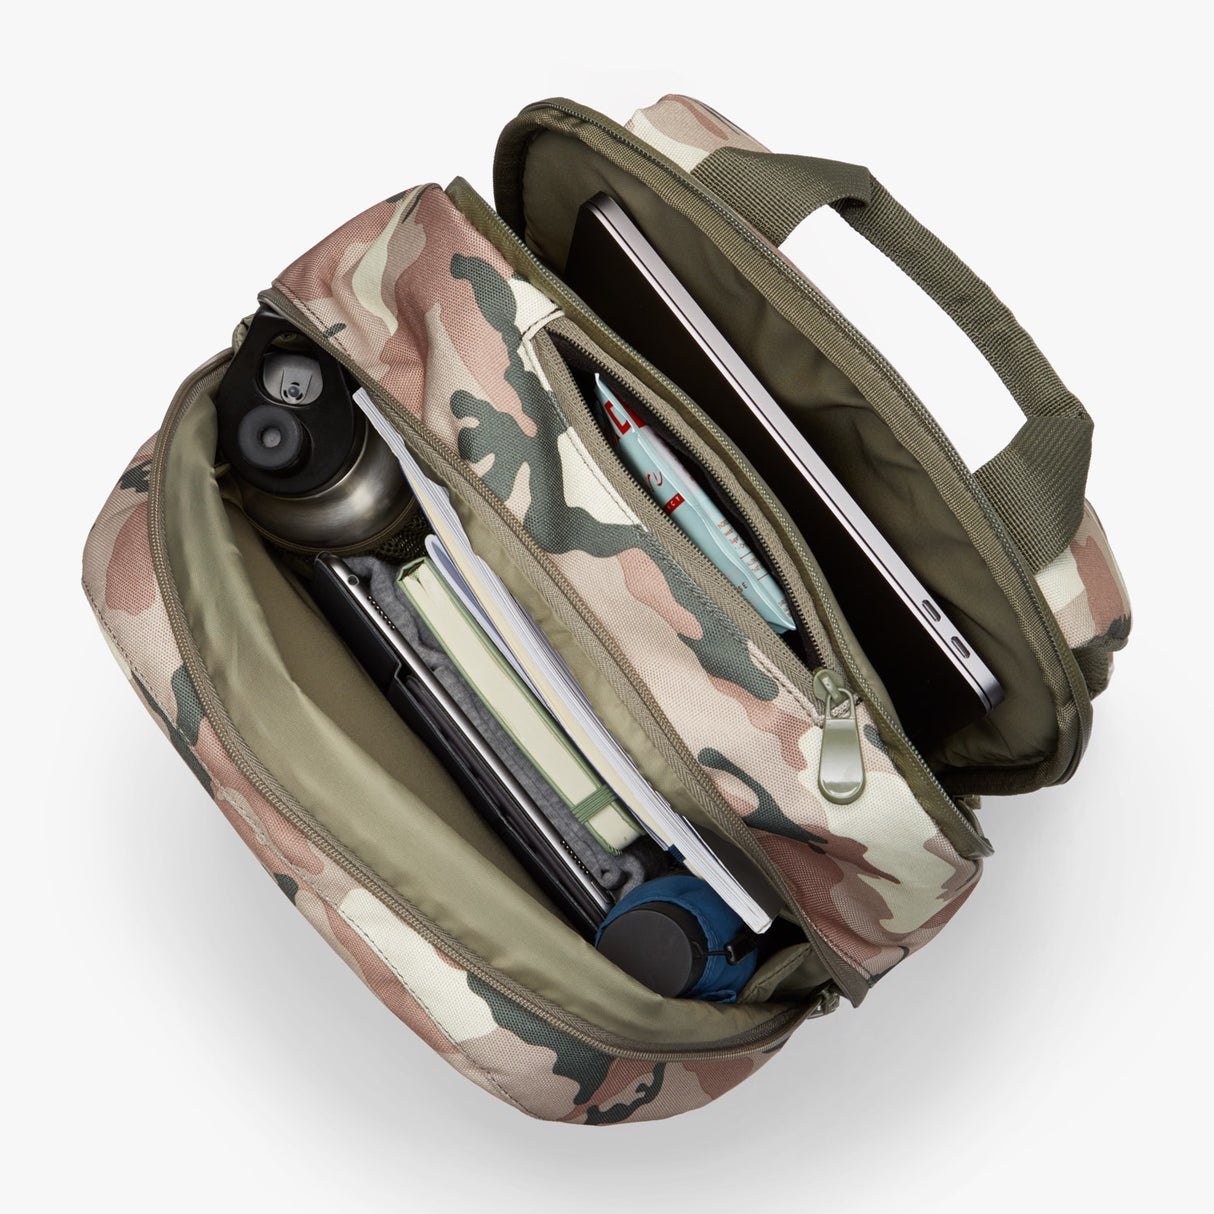 Interior Full - Hanover 2 - 600D Recycled Poly - Tan Camo - Backpack - Lo & Sons